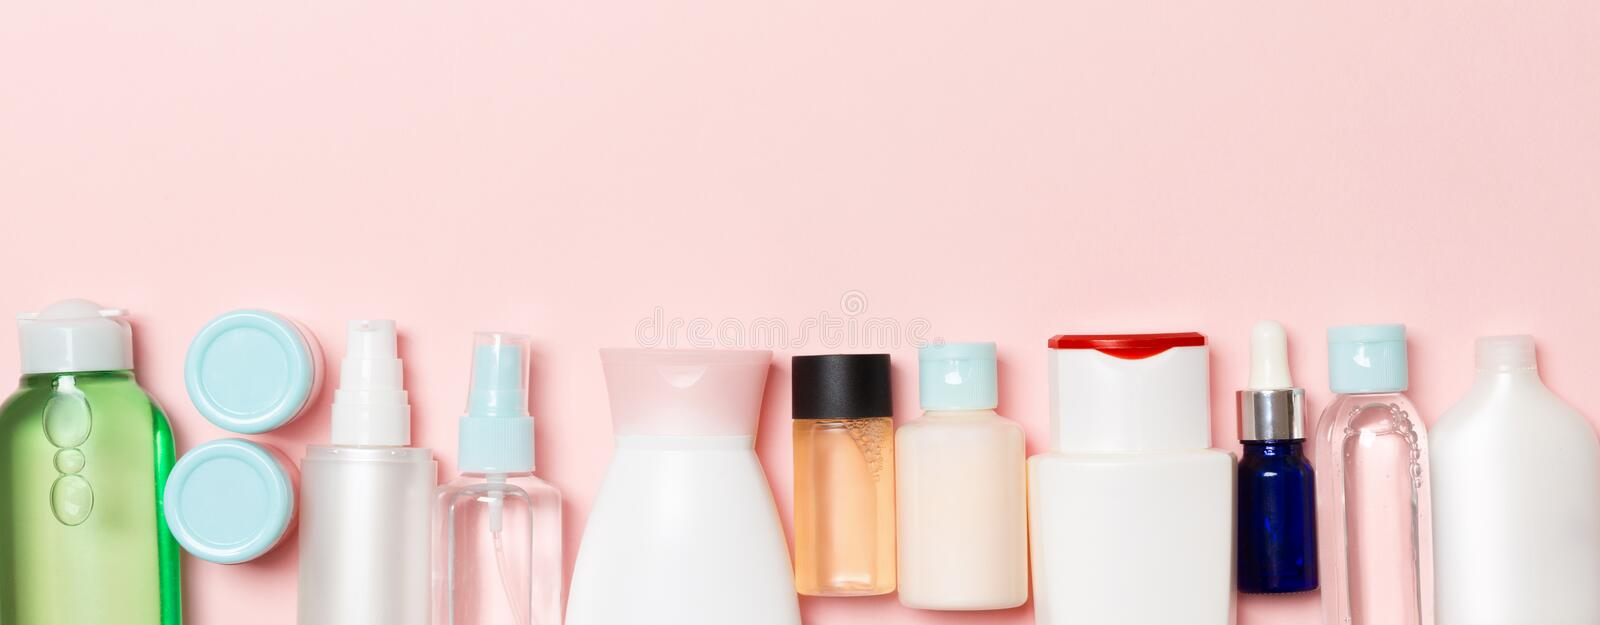 Top view of cosmetics bottles on pink background. Skin care concept with space for your design.  stock photography